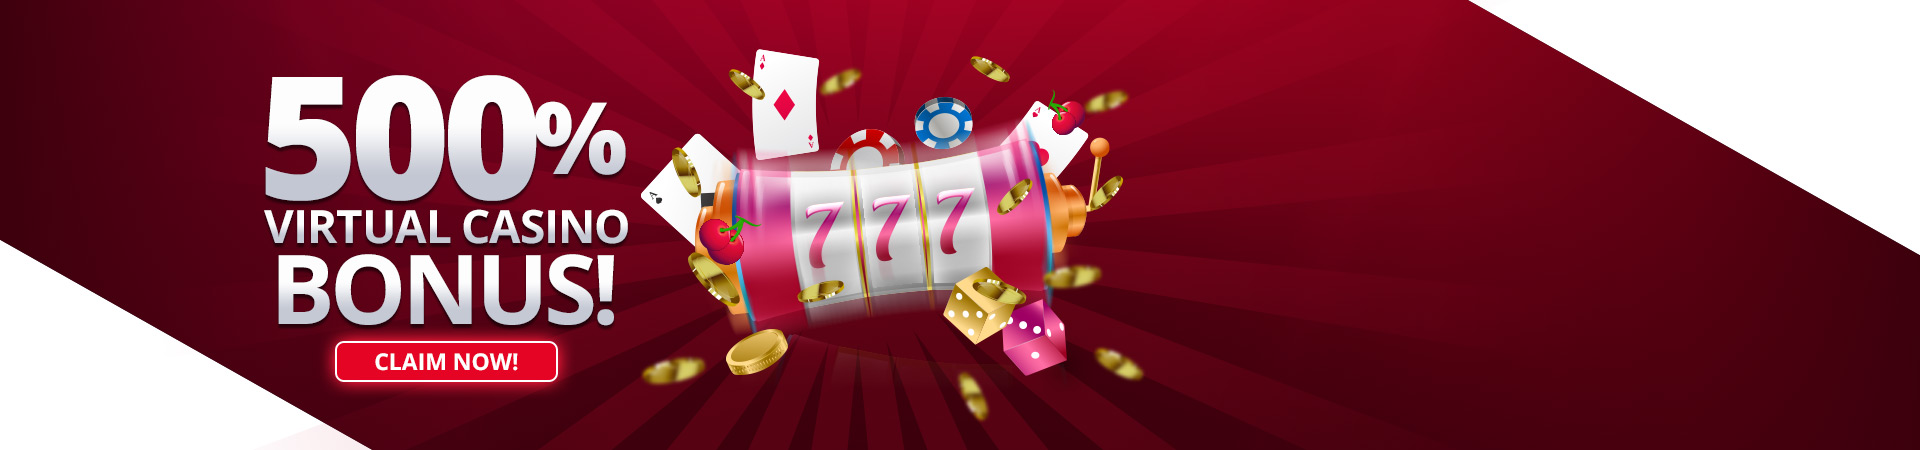 Virtual Casino Bonus